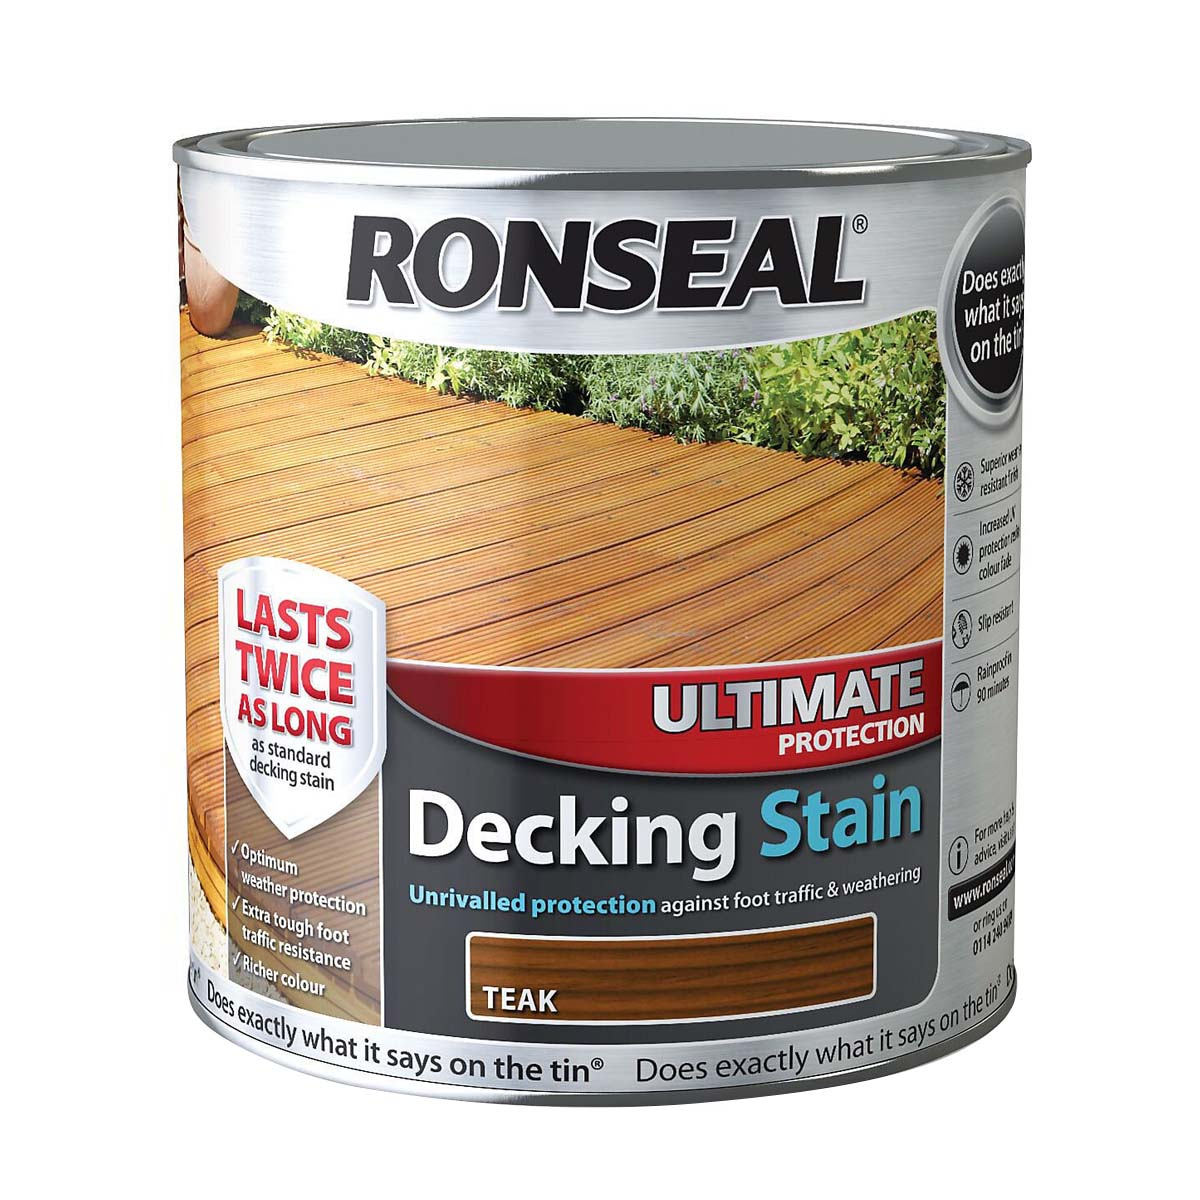 Ronseal Ultimate Protection Decking Stain Teak 2.5L (36907)